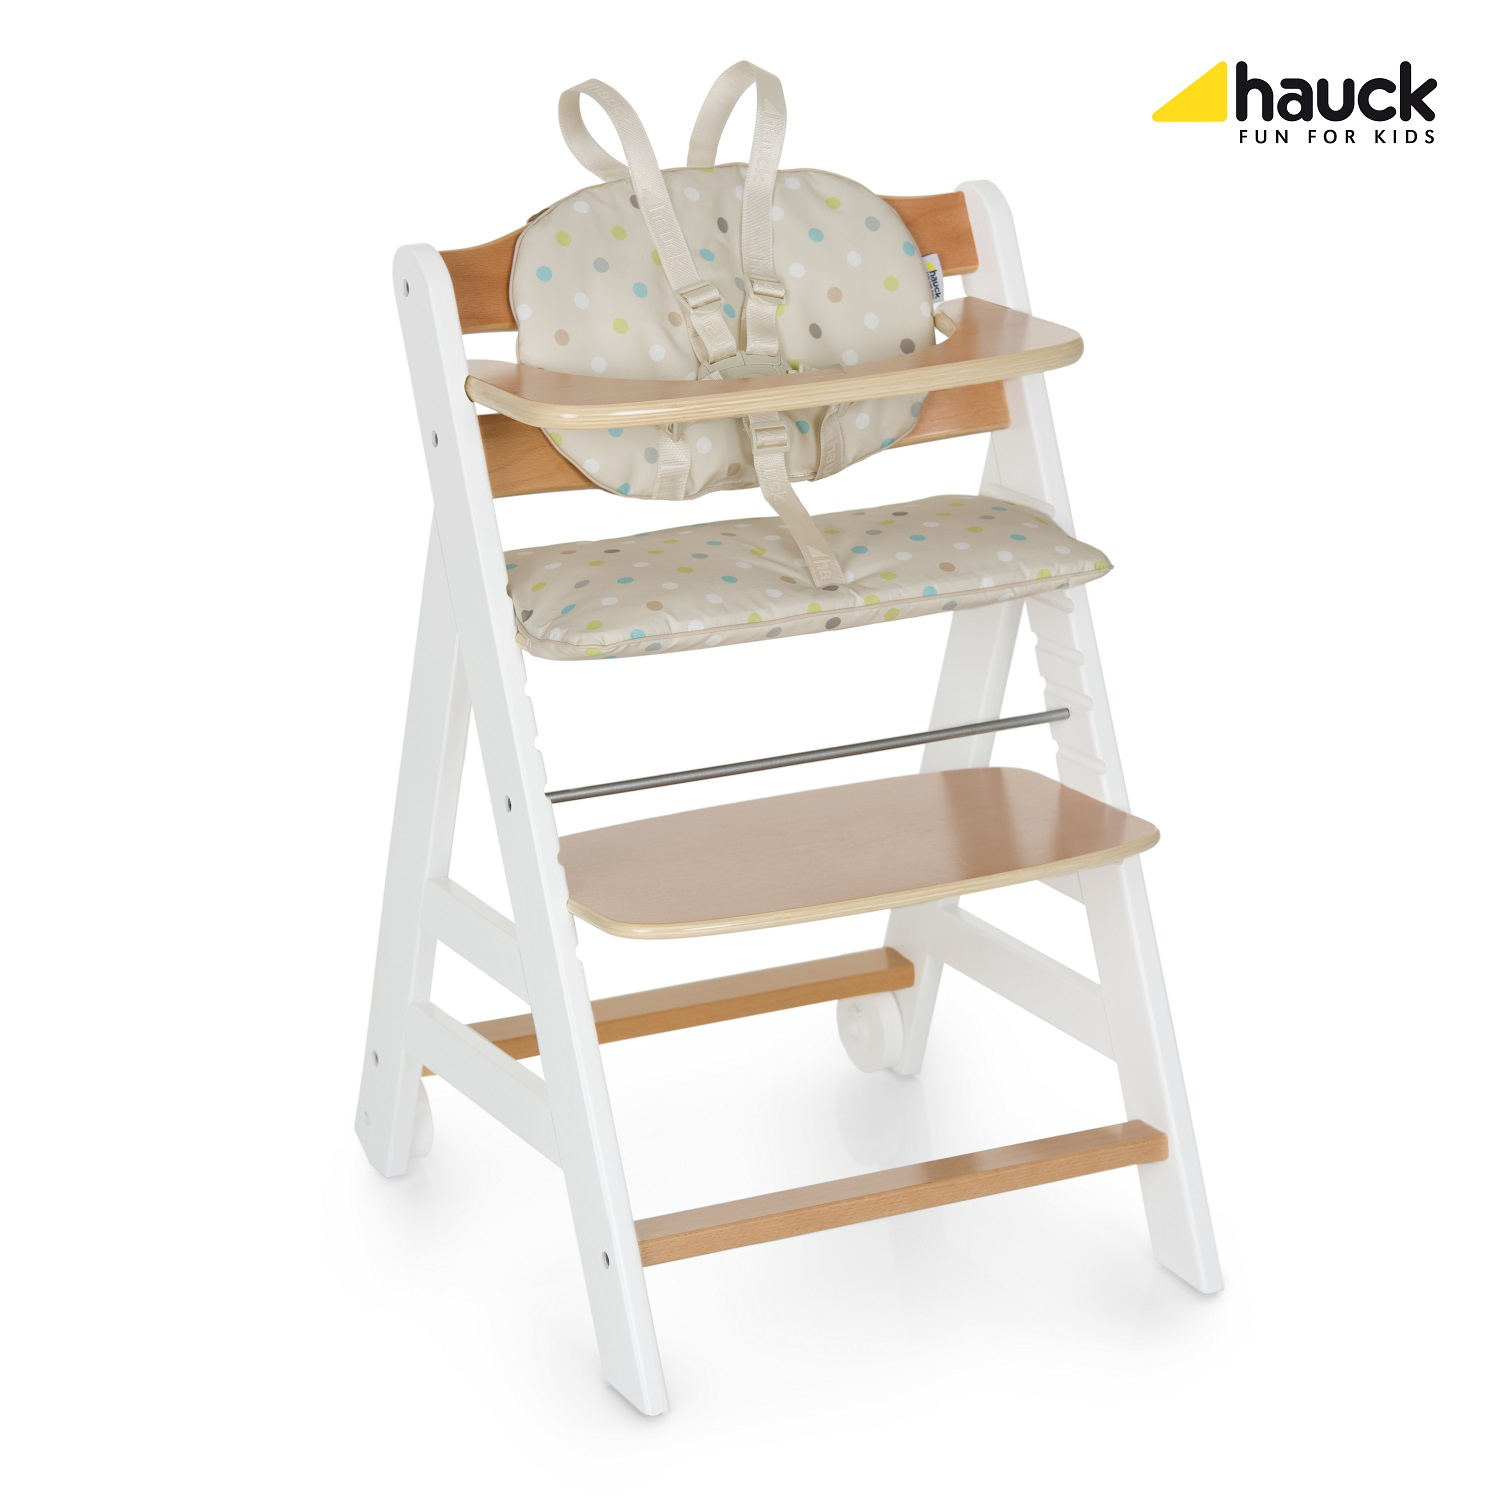 hauck high chair ikea office markus beta 43 2017 white natur dots sand buy at